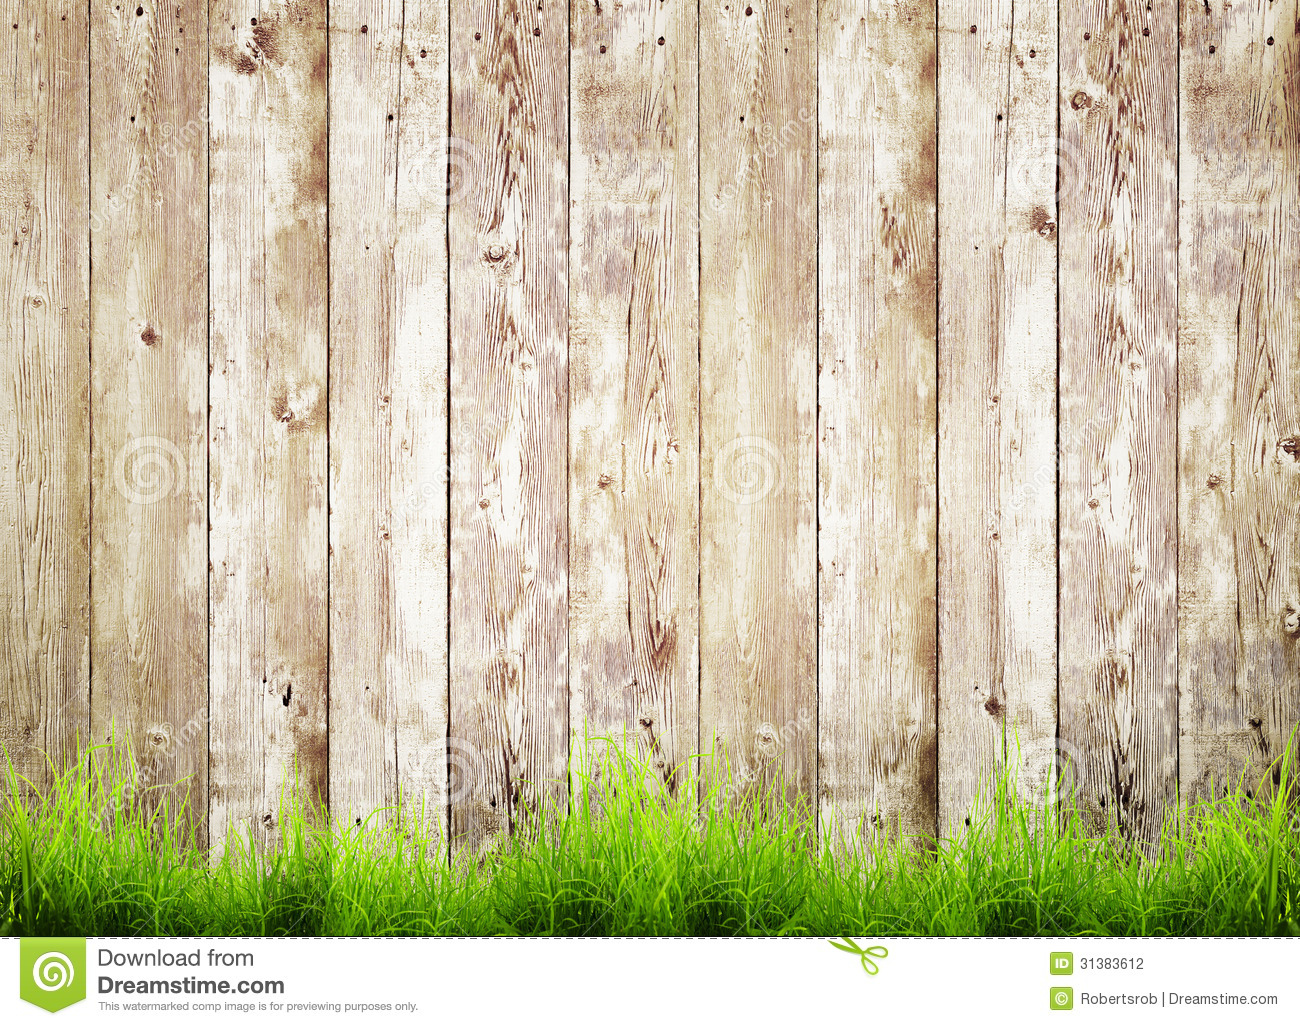 Fresh spring green grass and leaf plant over wood fence background.